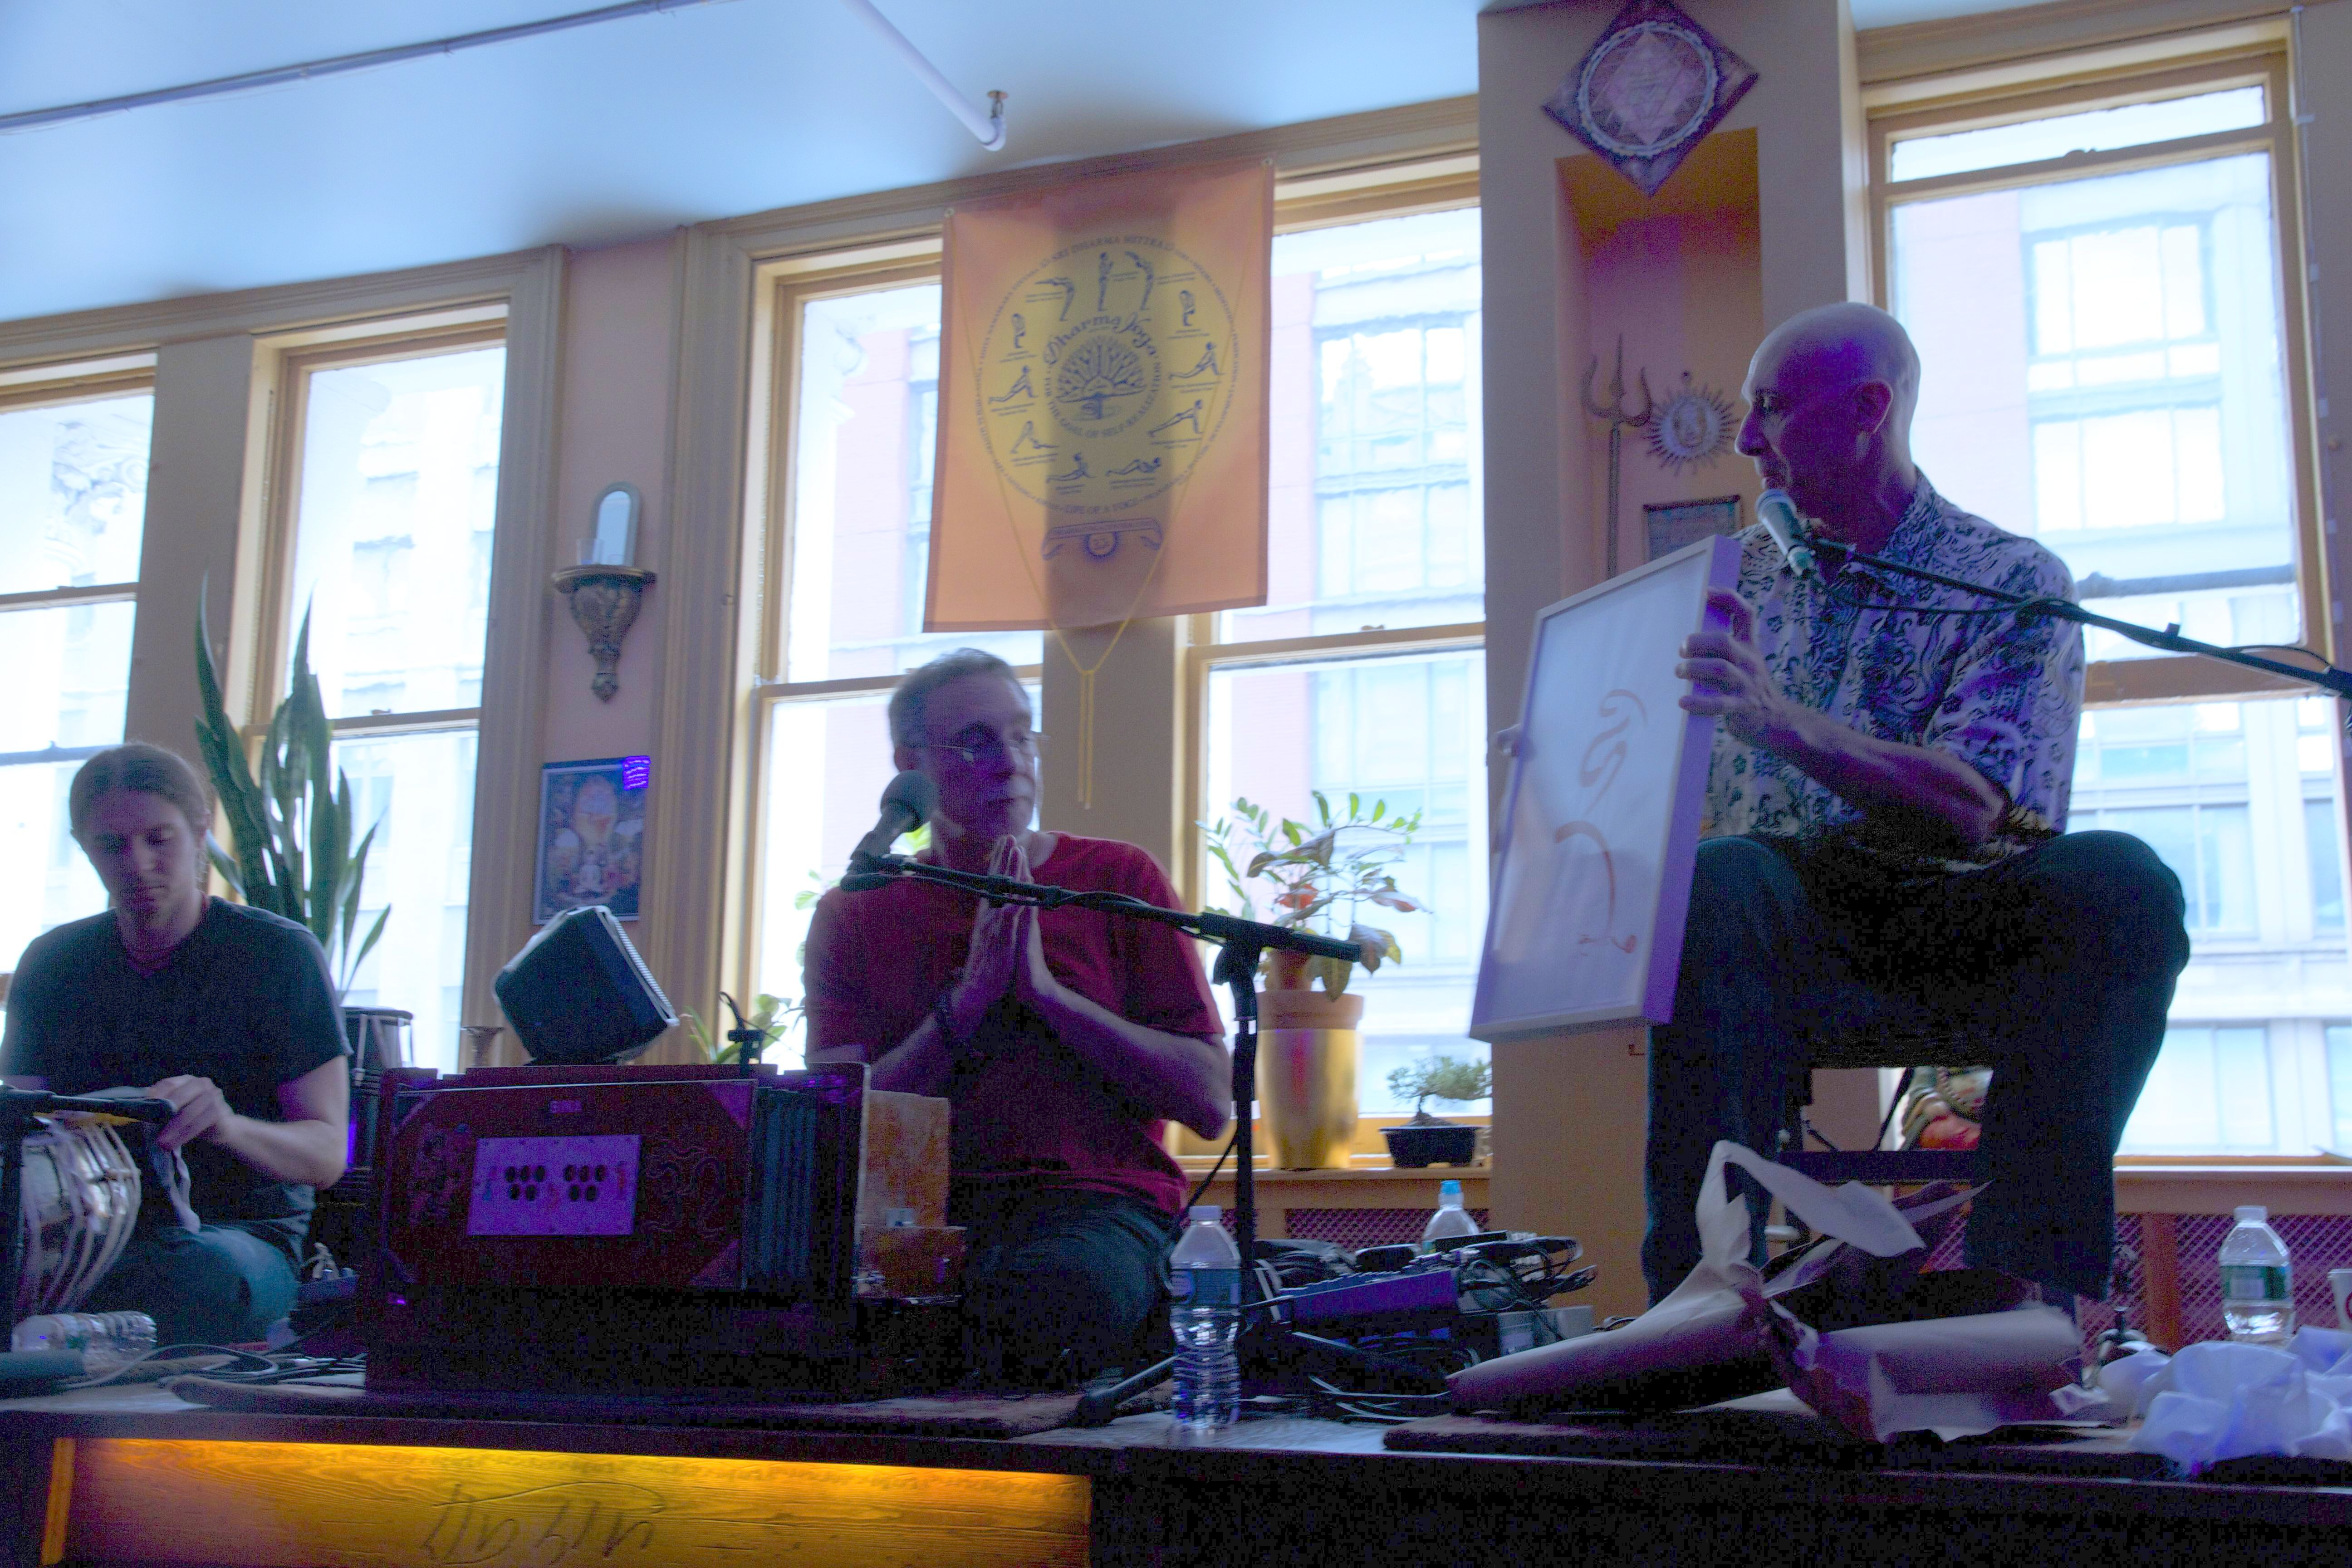 Michael Katz (right) presents a gift of calligraphy by Chögyal Namkhai Norbu to Krishna Das (center) at the Benefit Performance in NYC